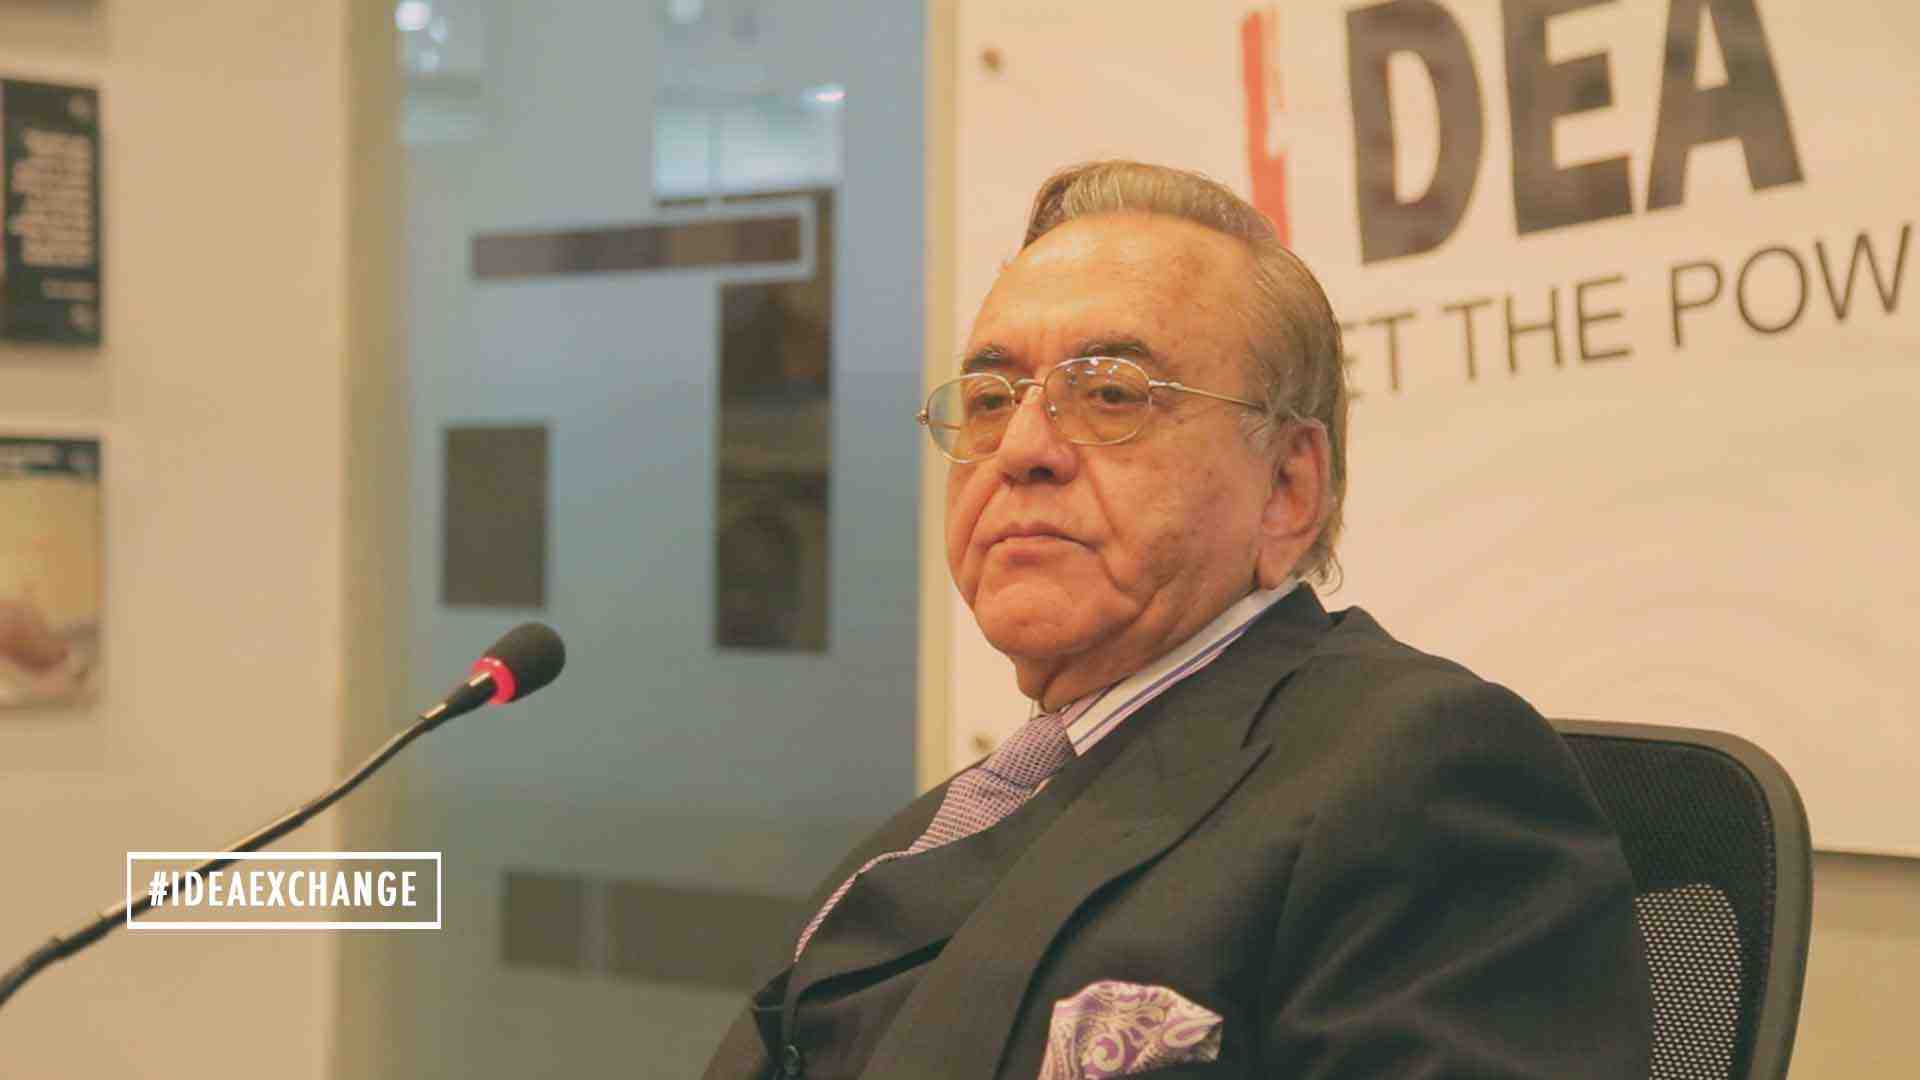 India and Pakistan can resolve all issues: Khurshid Mahmud Kasuri